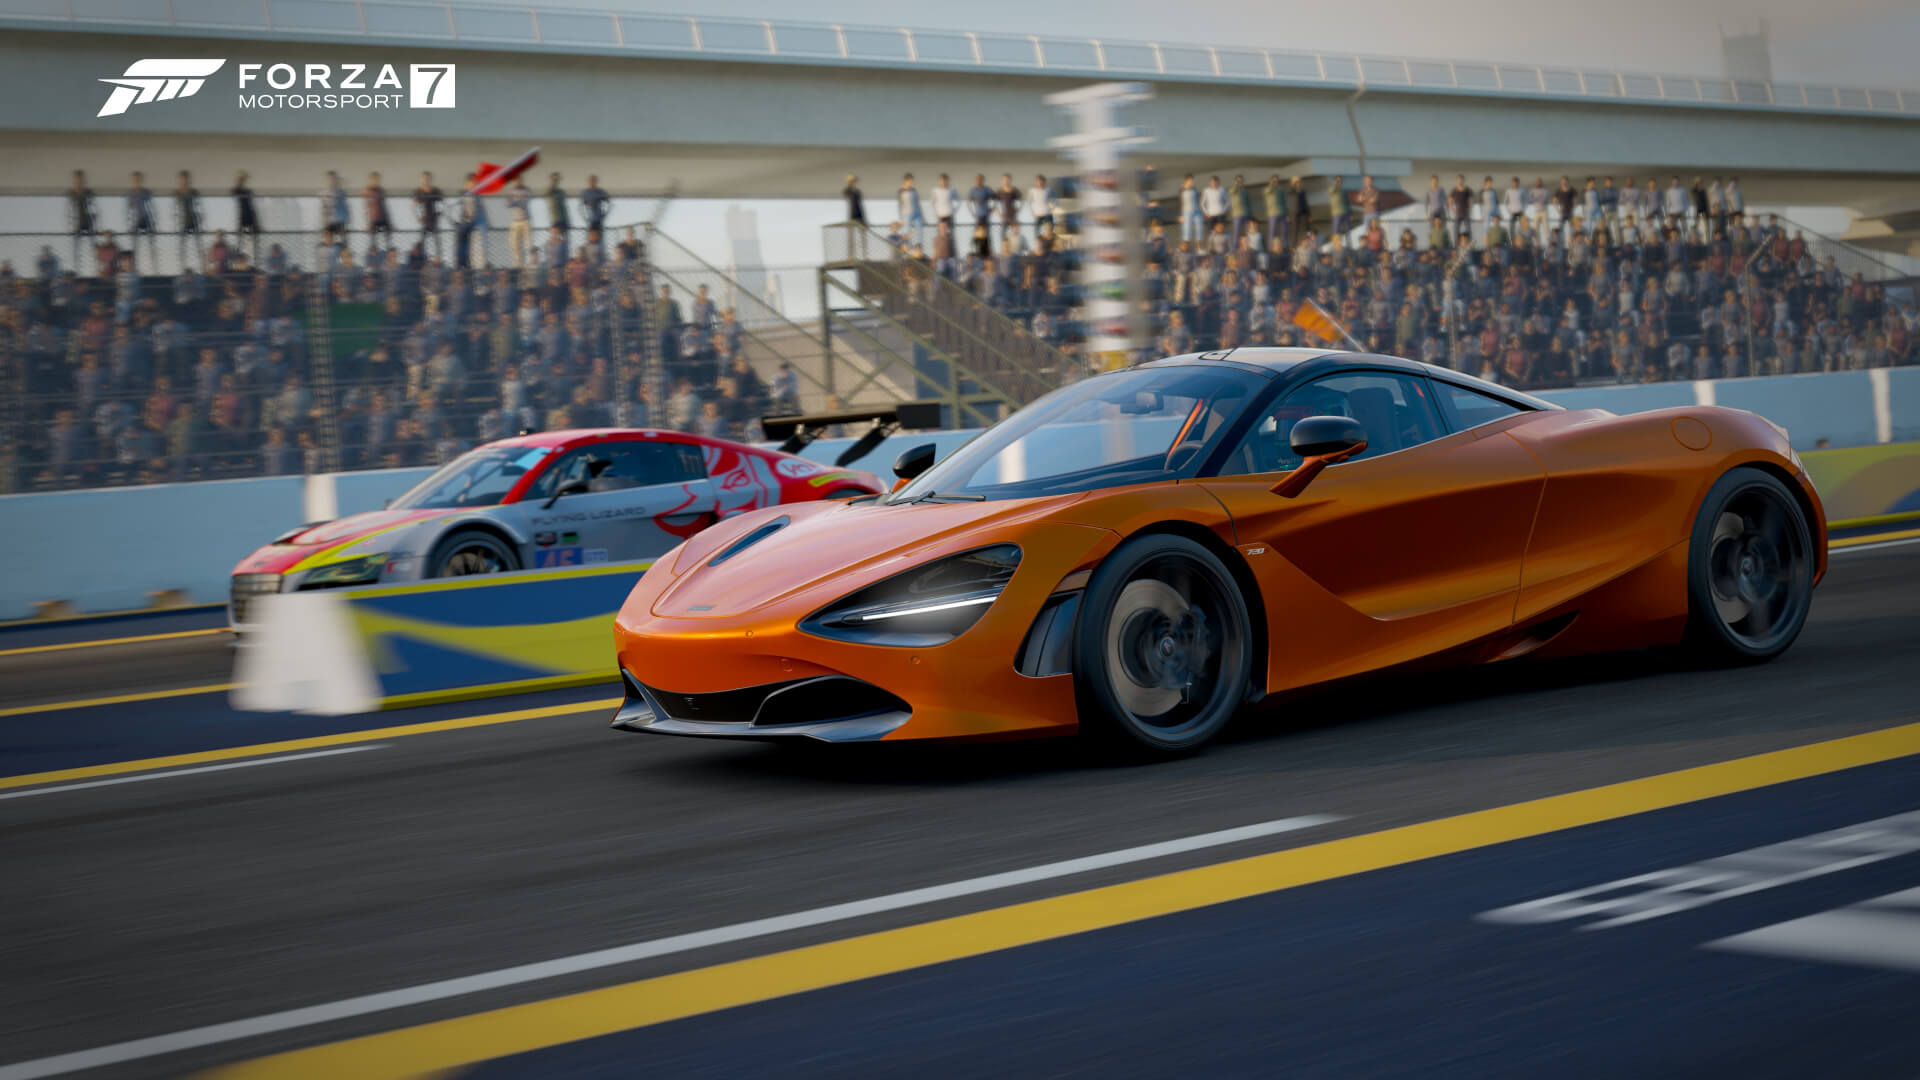 What to expect from Forza Motorsport 7 and Forza Horizon 4 in 2019